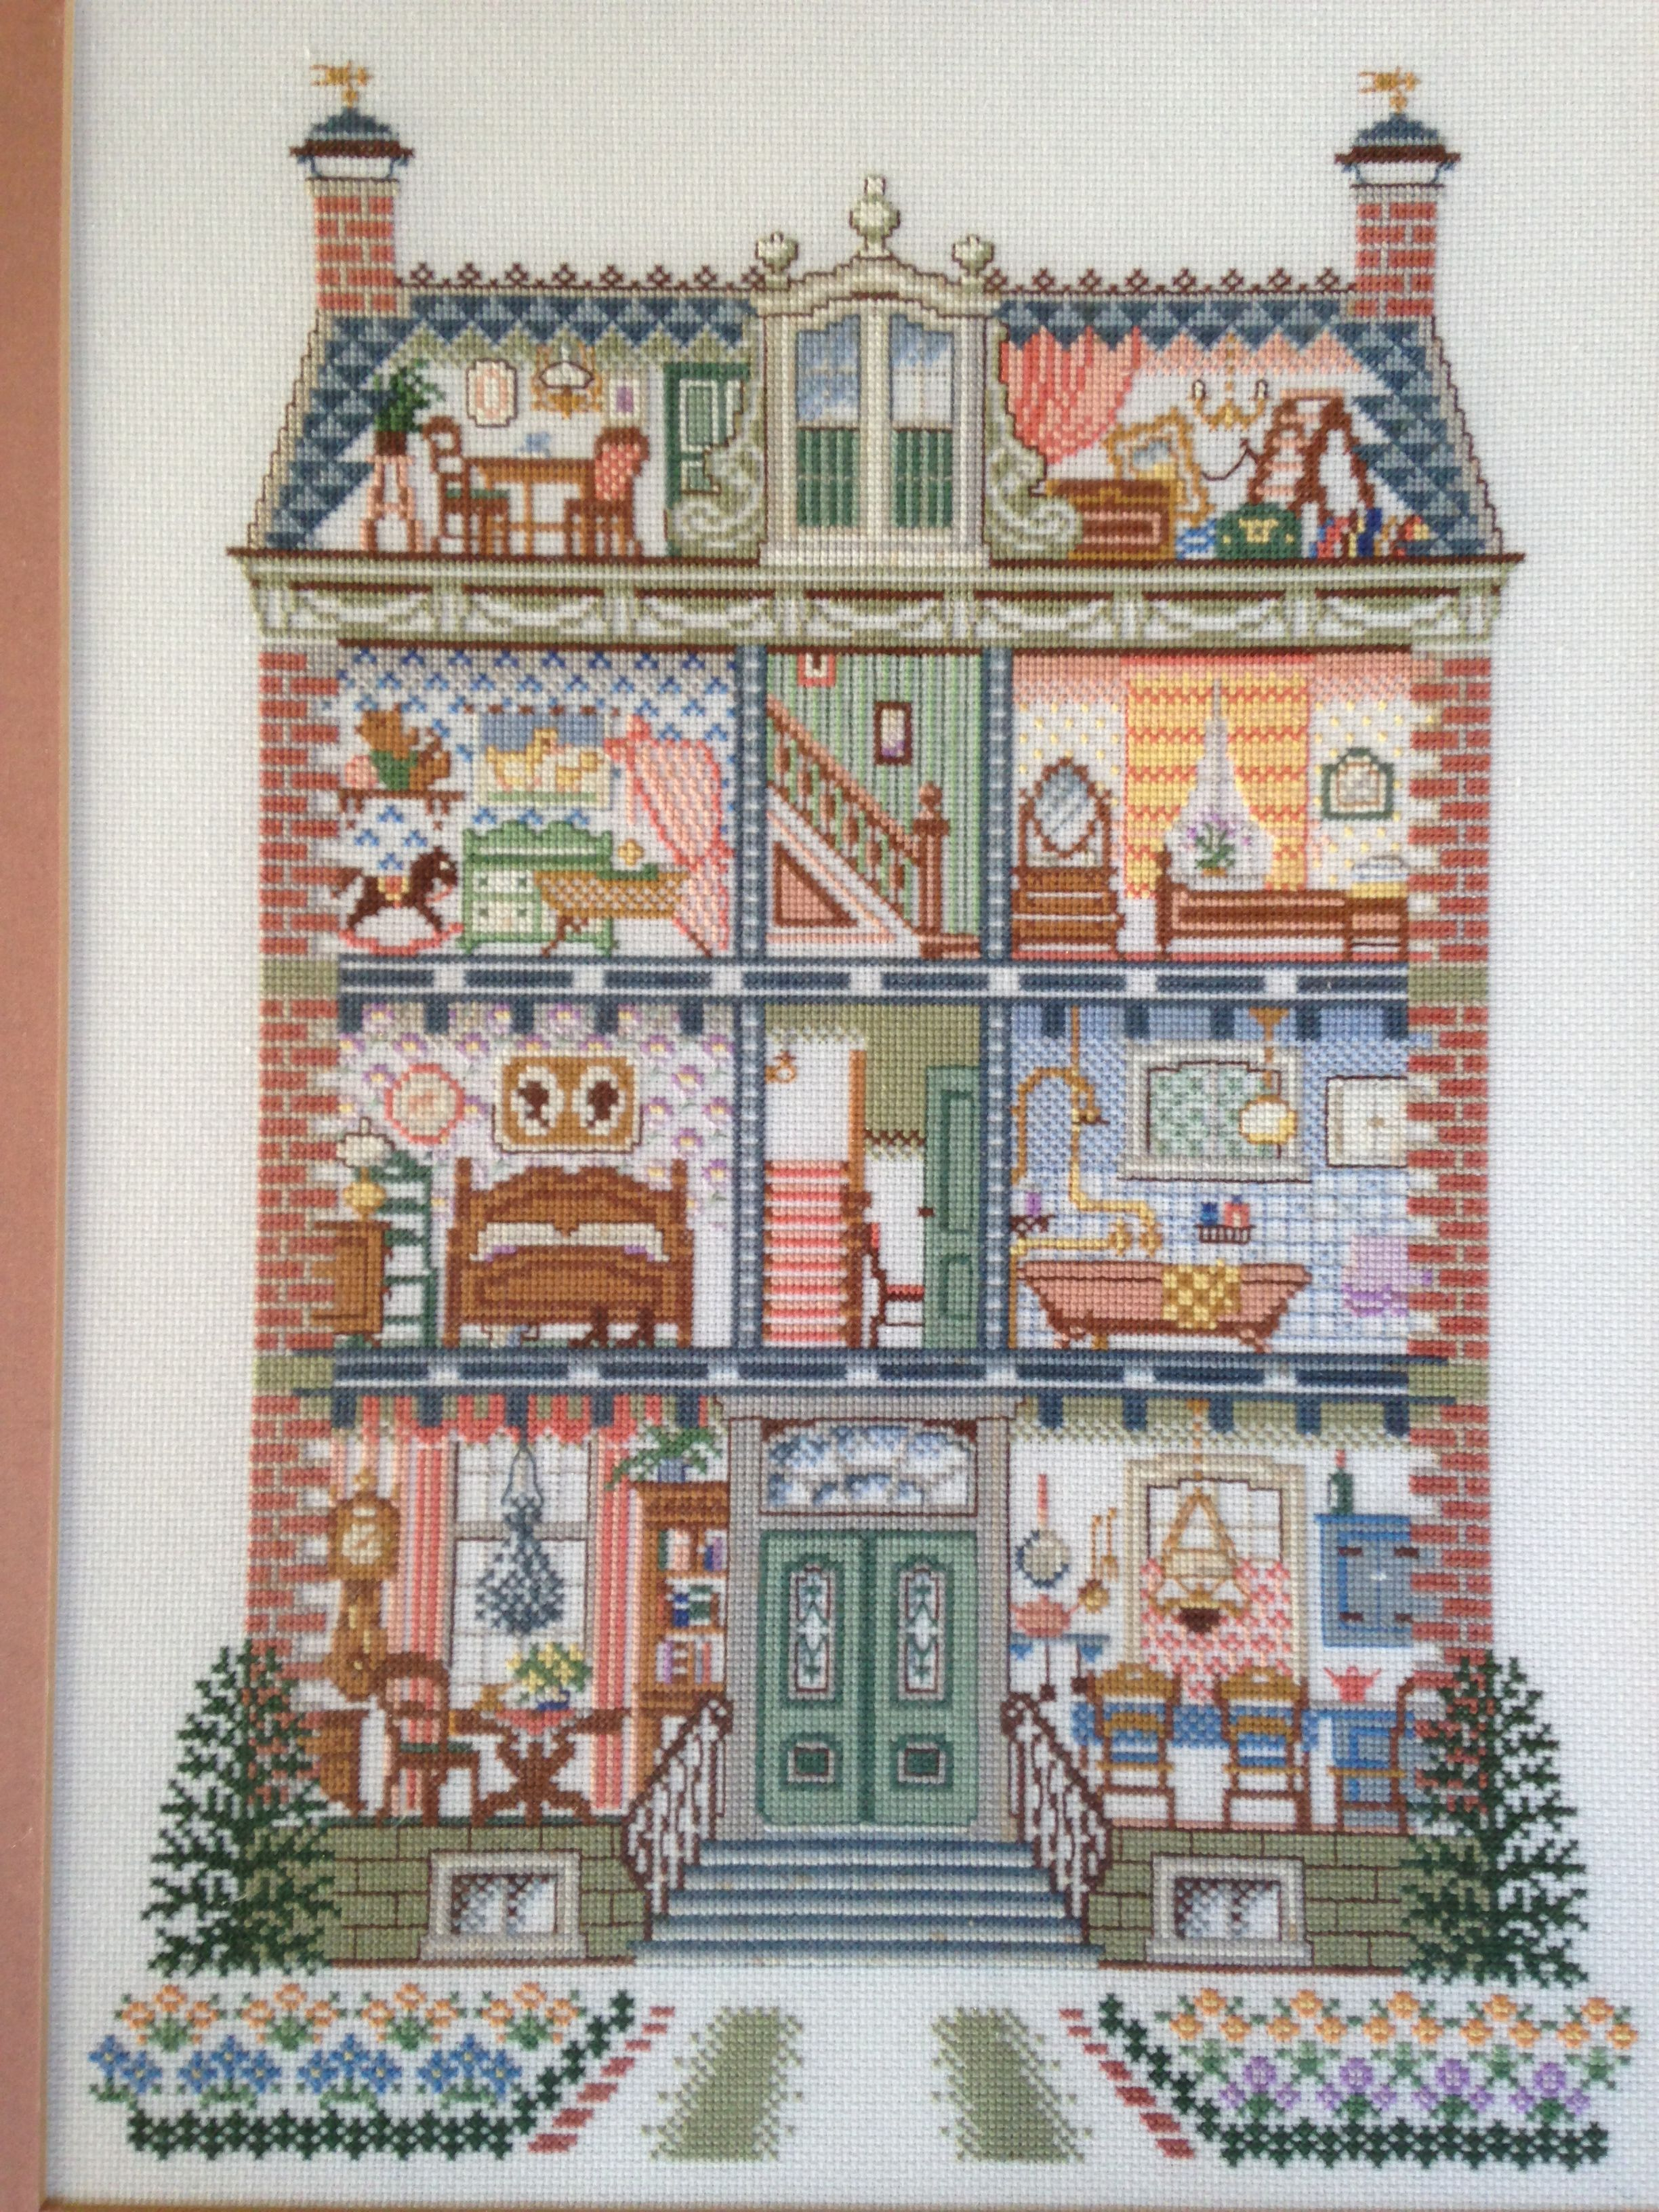 Cross stiched Dollhouse